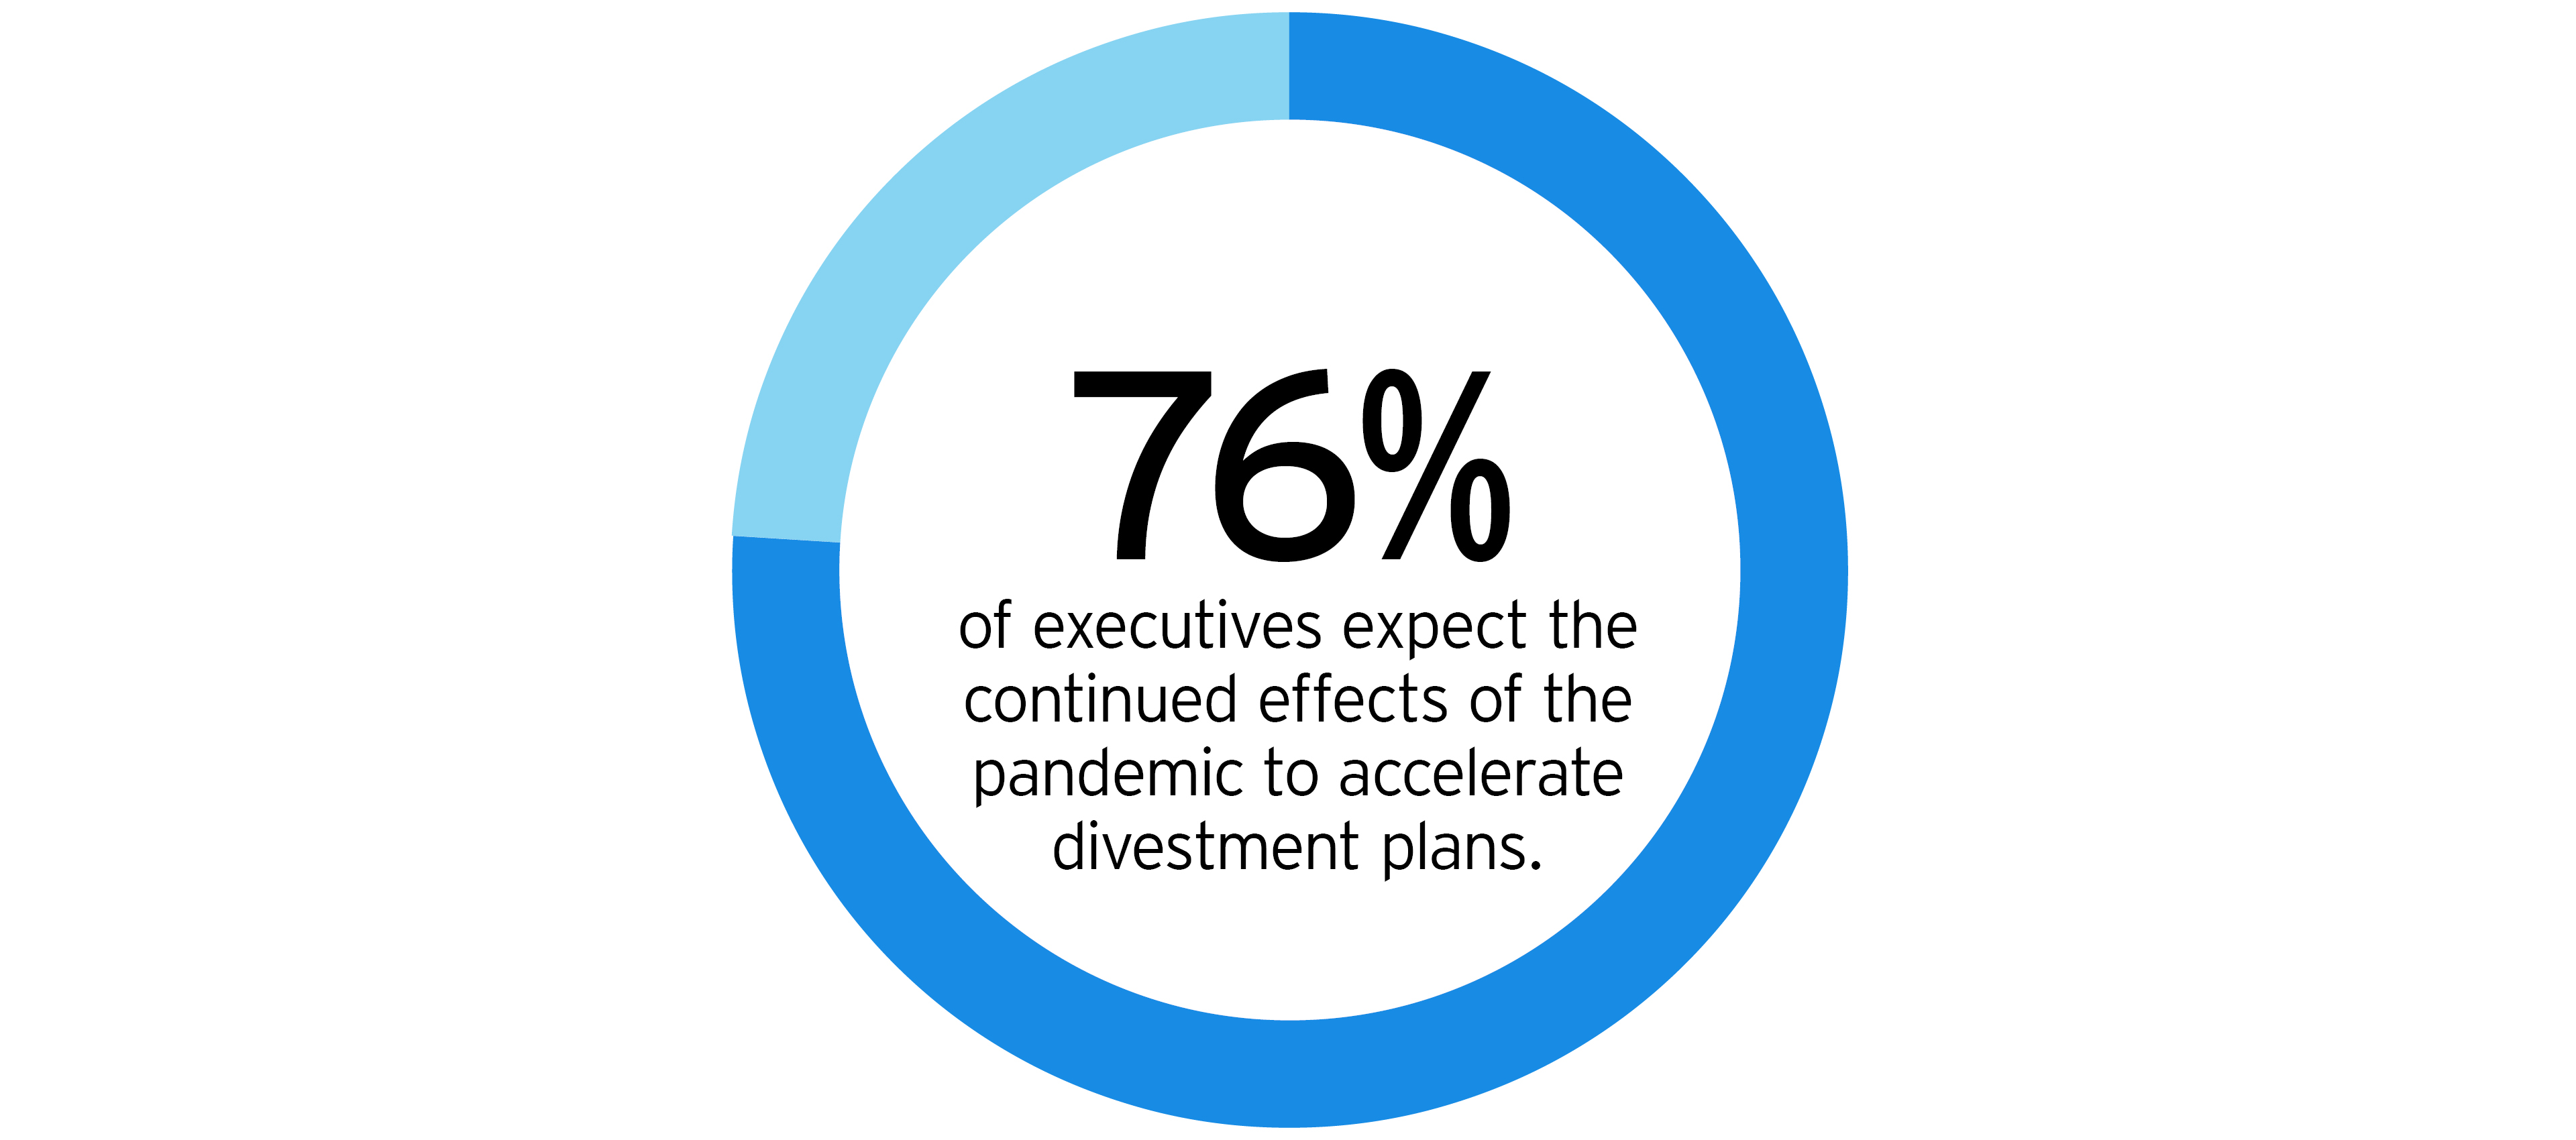 76% of executives expect